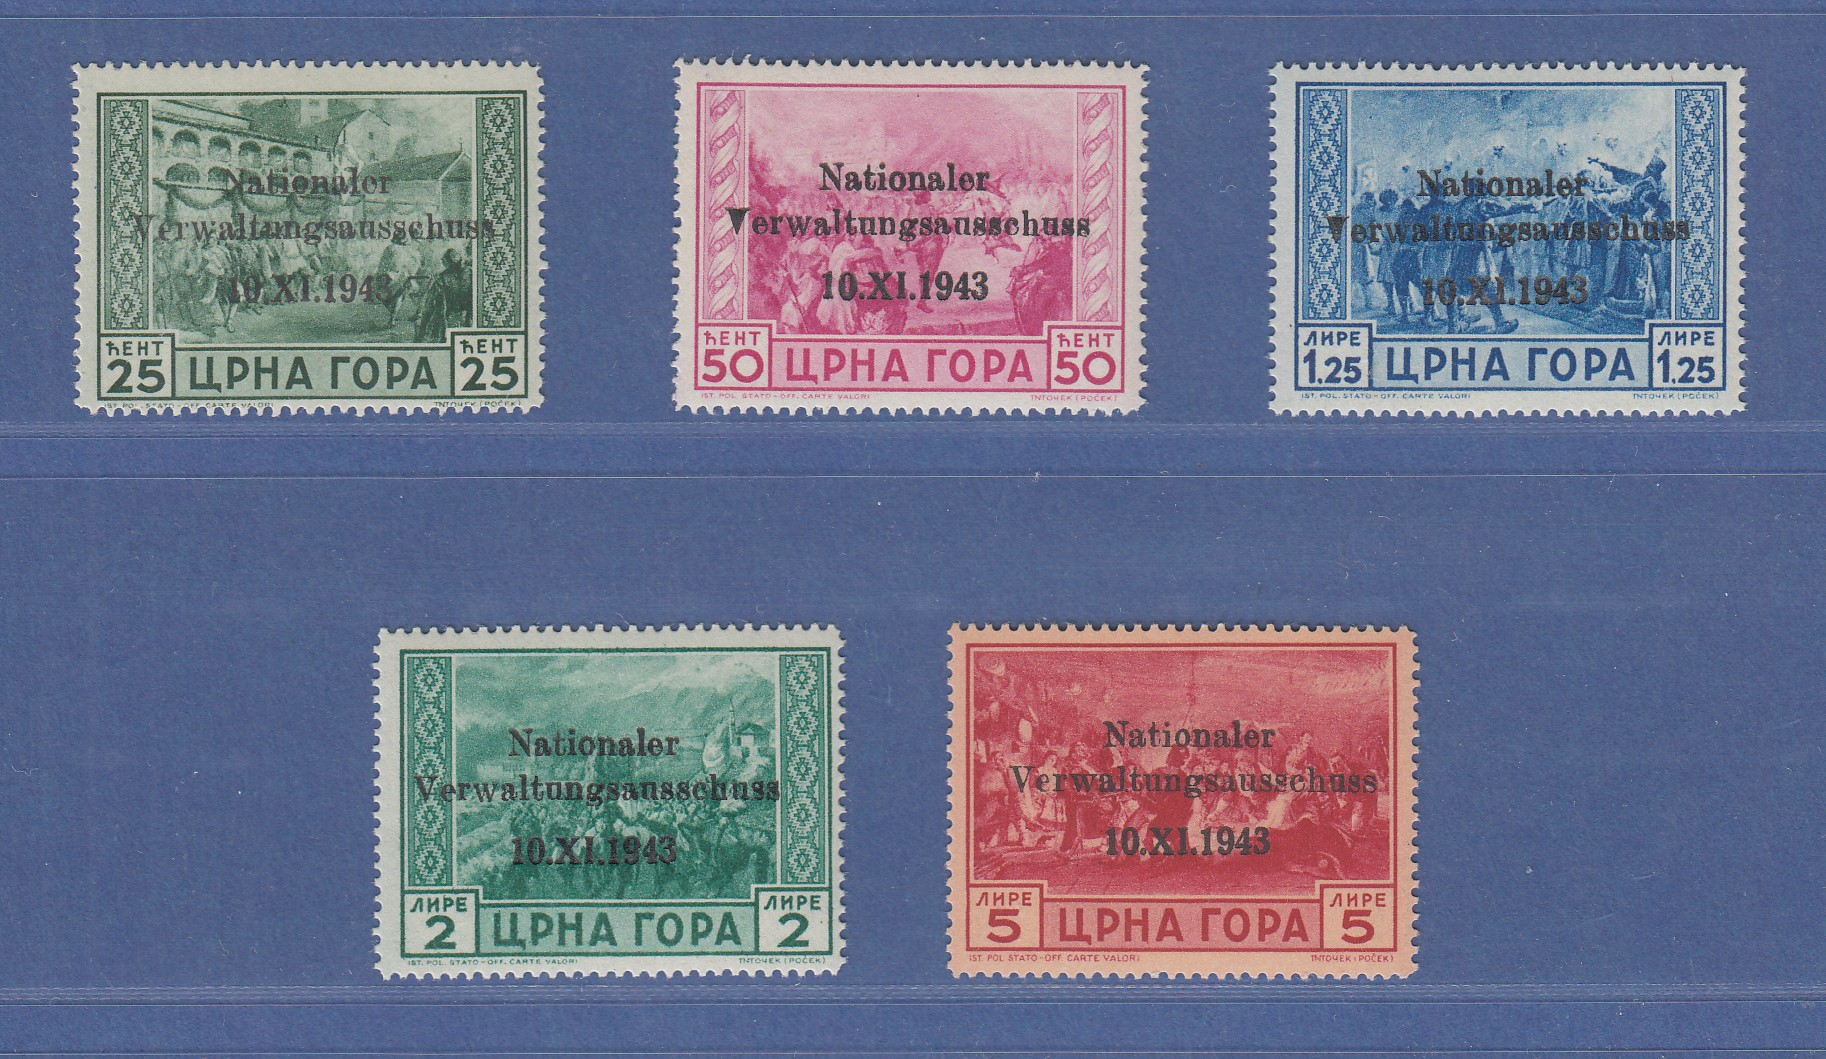 Montenegro Philatelie Block 2a Briefmarke Sammeln Stamp